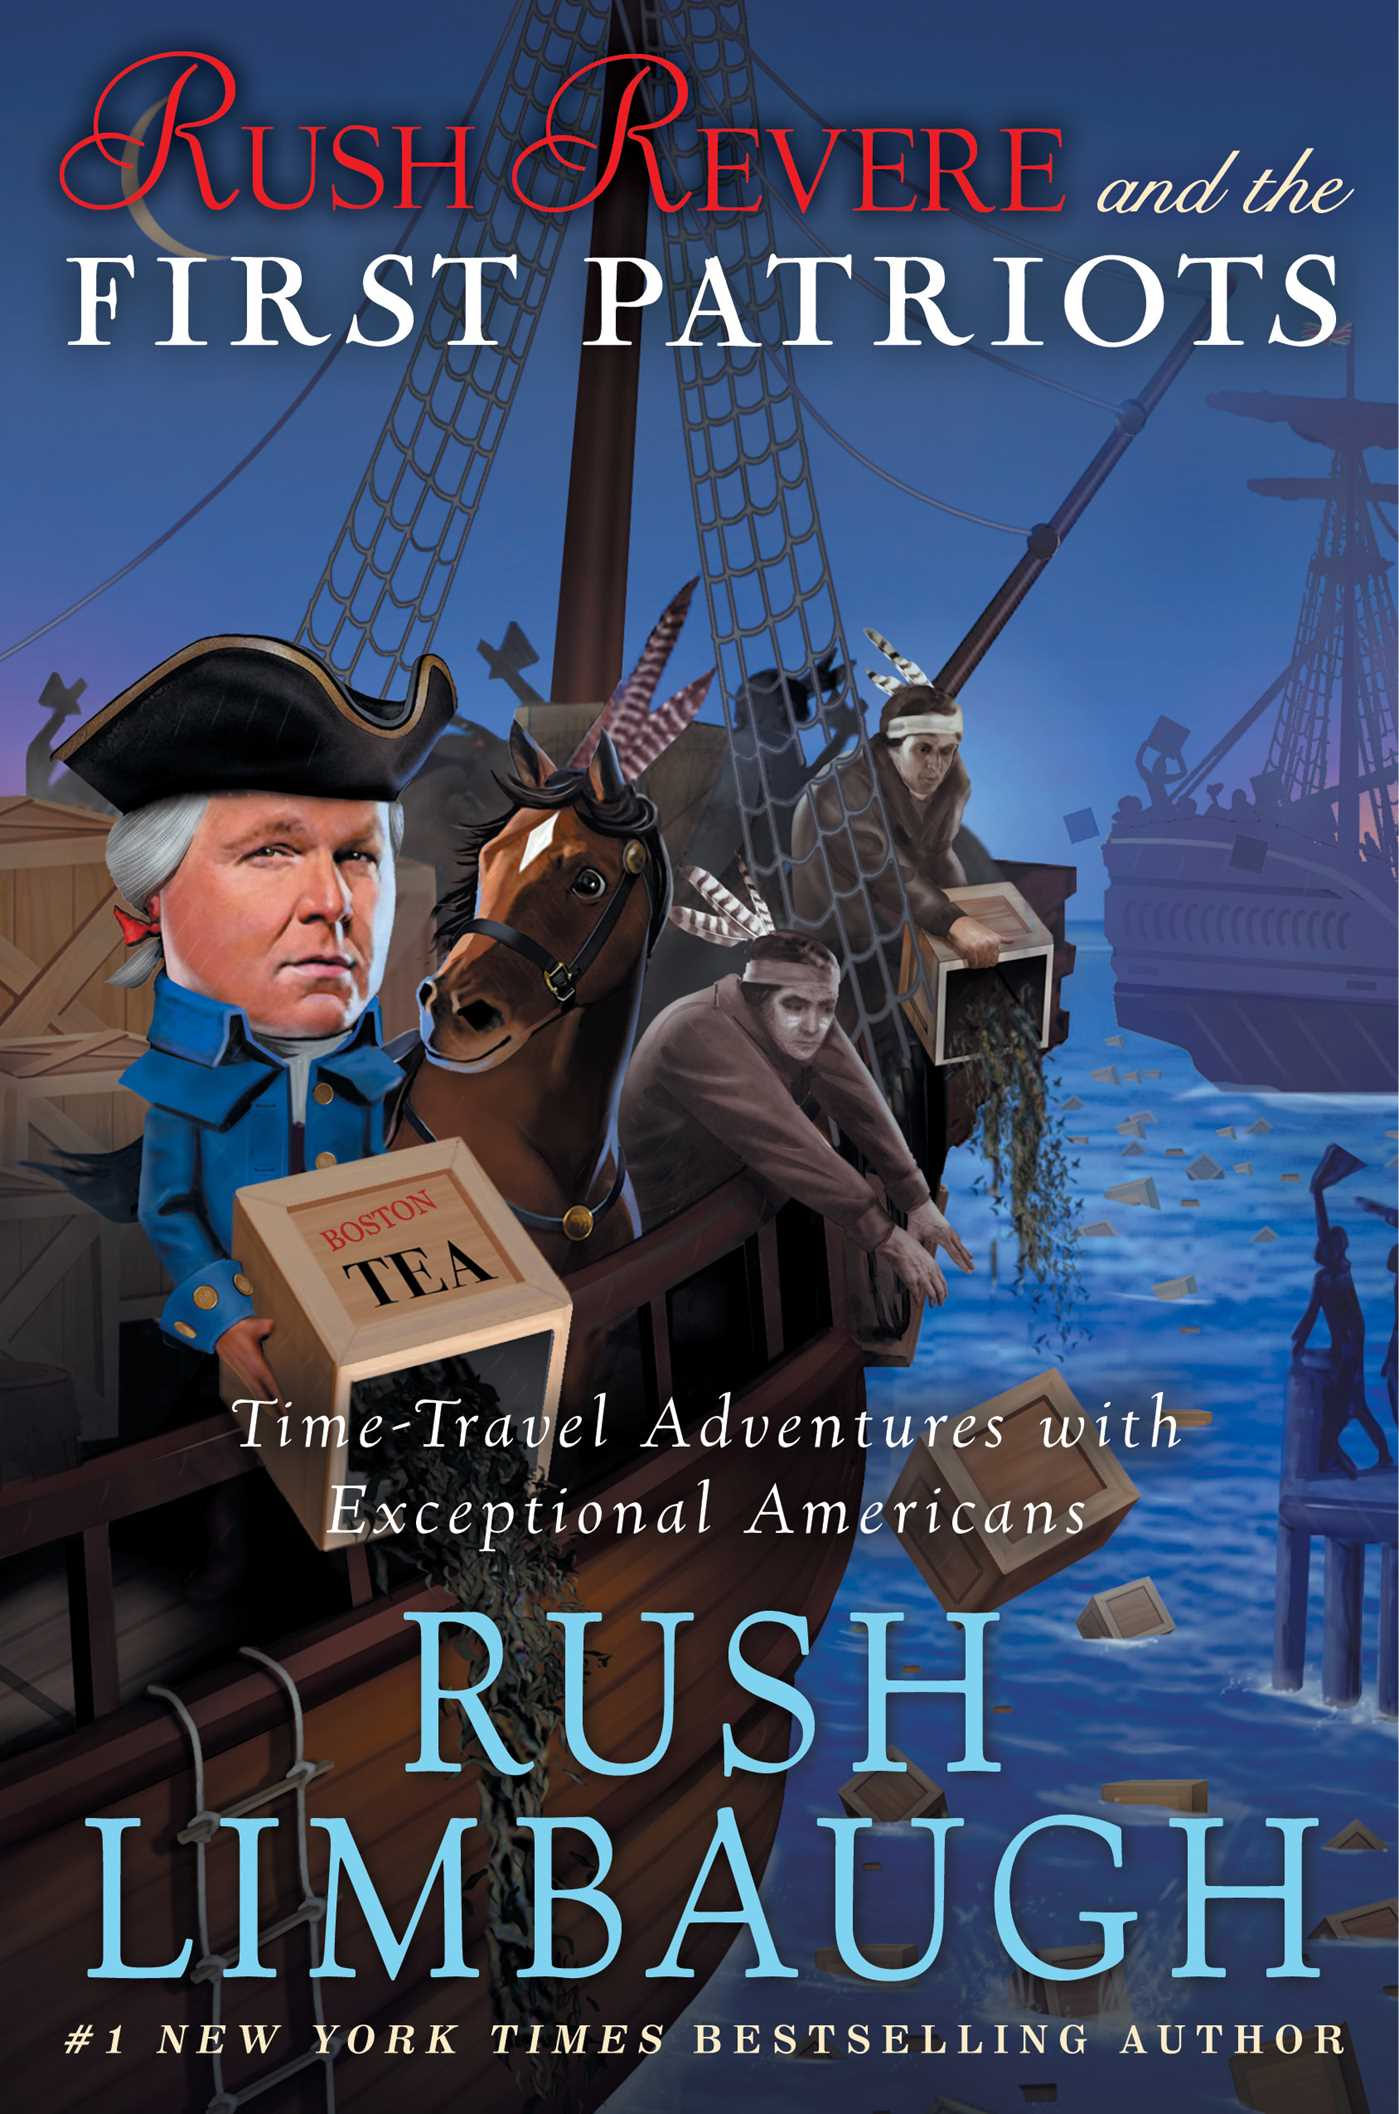 Rush-revere-and-the-first-patriots-9781476755885_hr